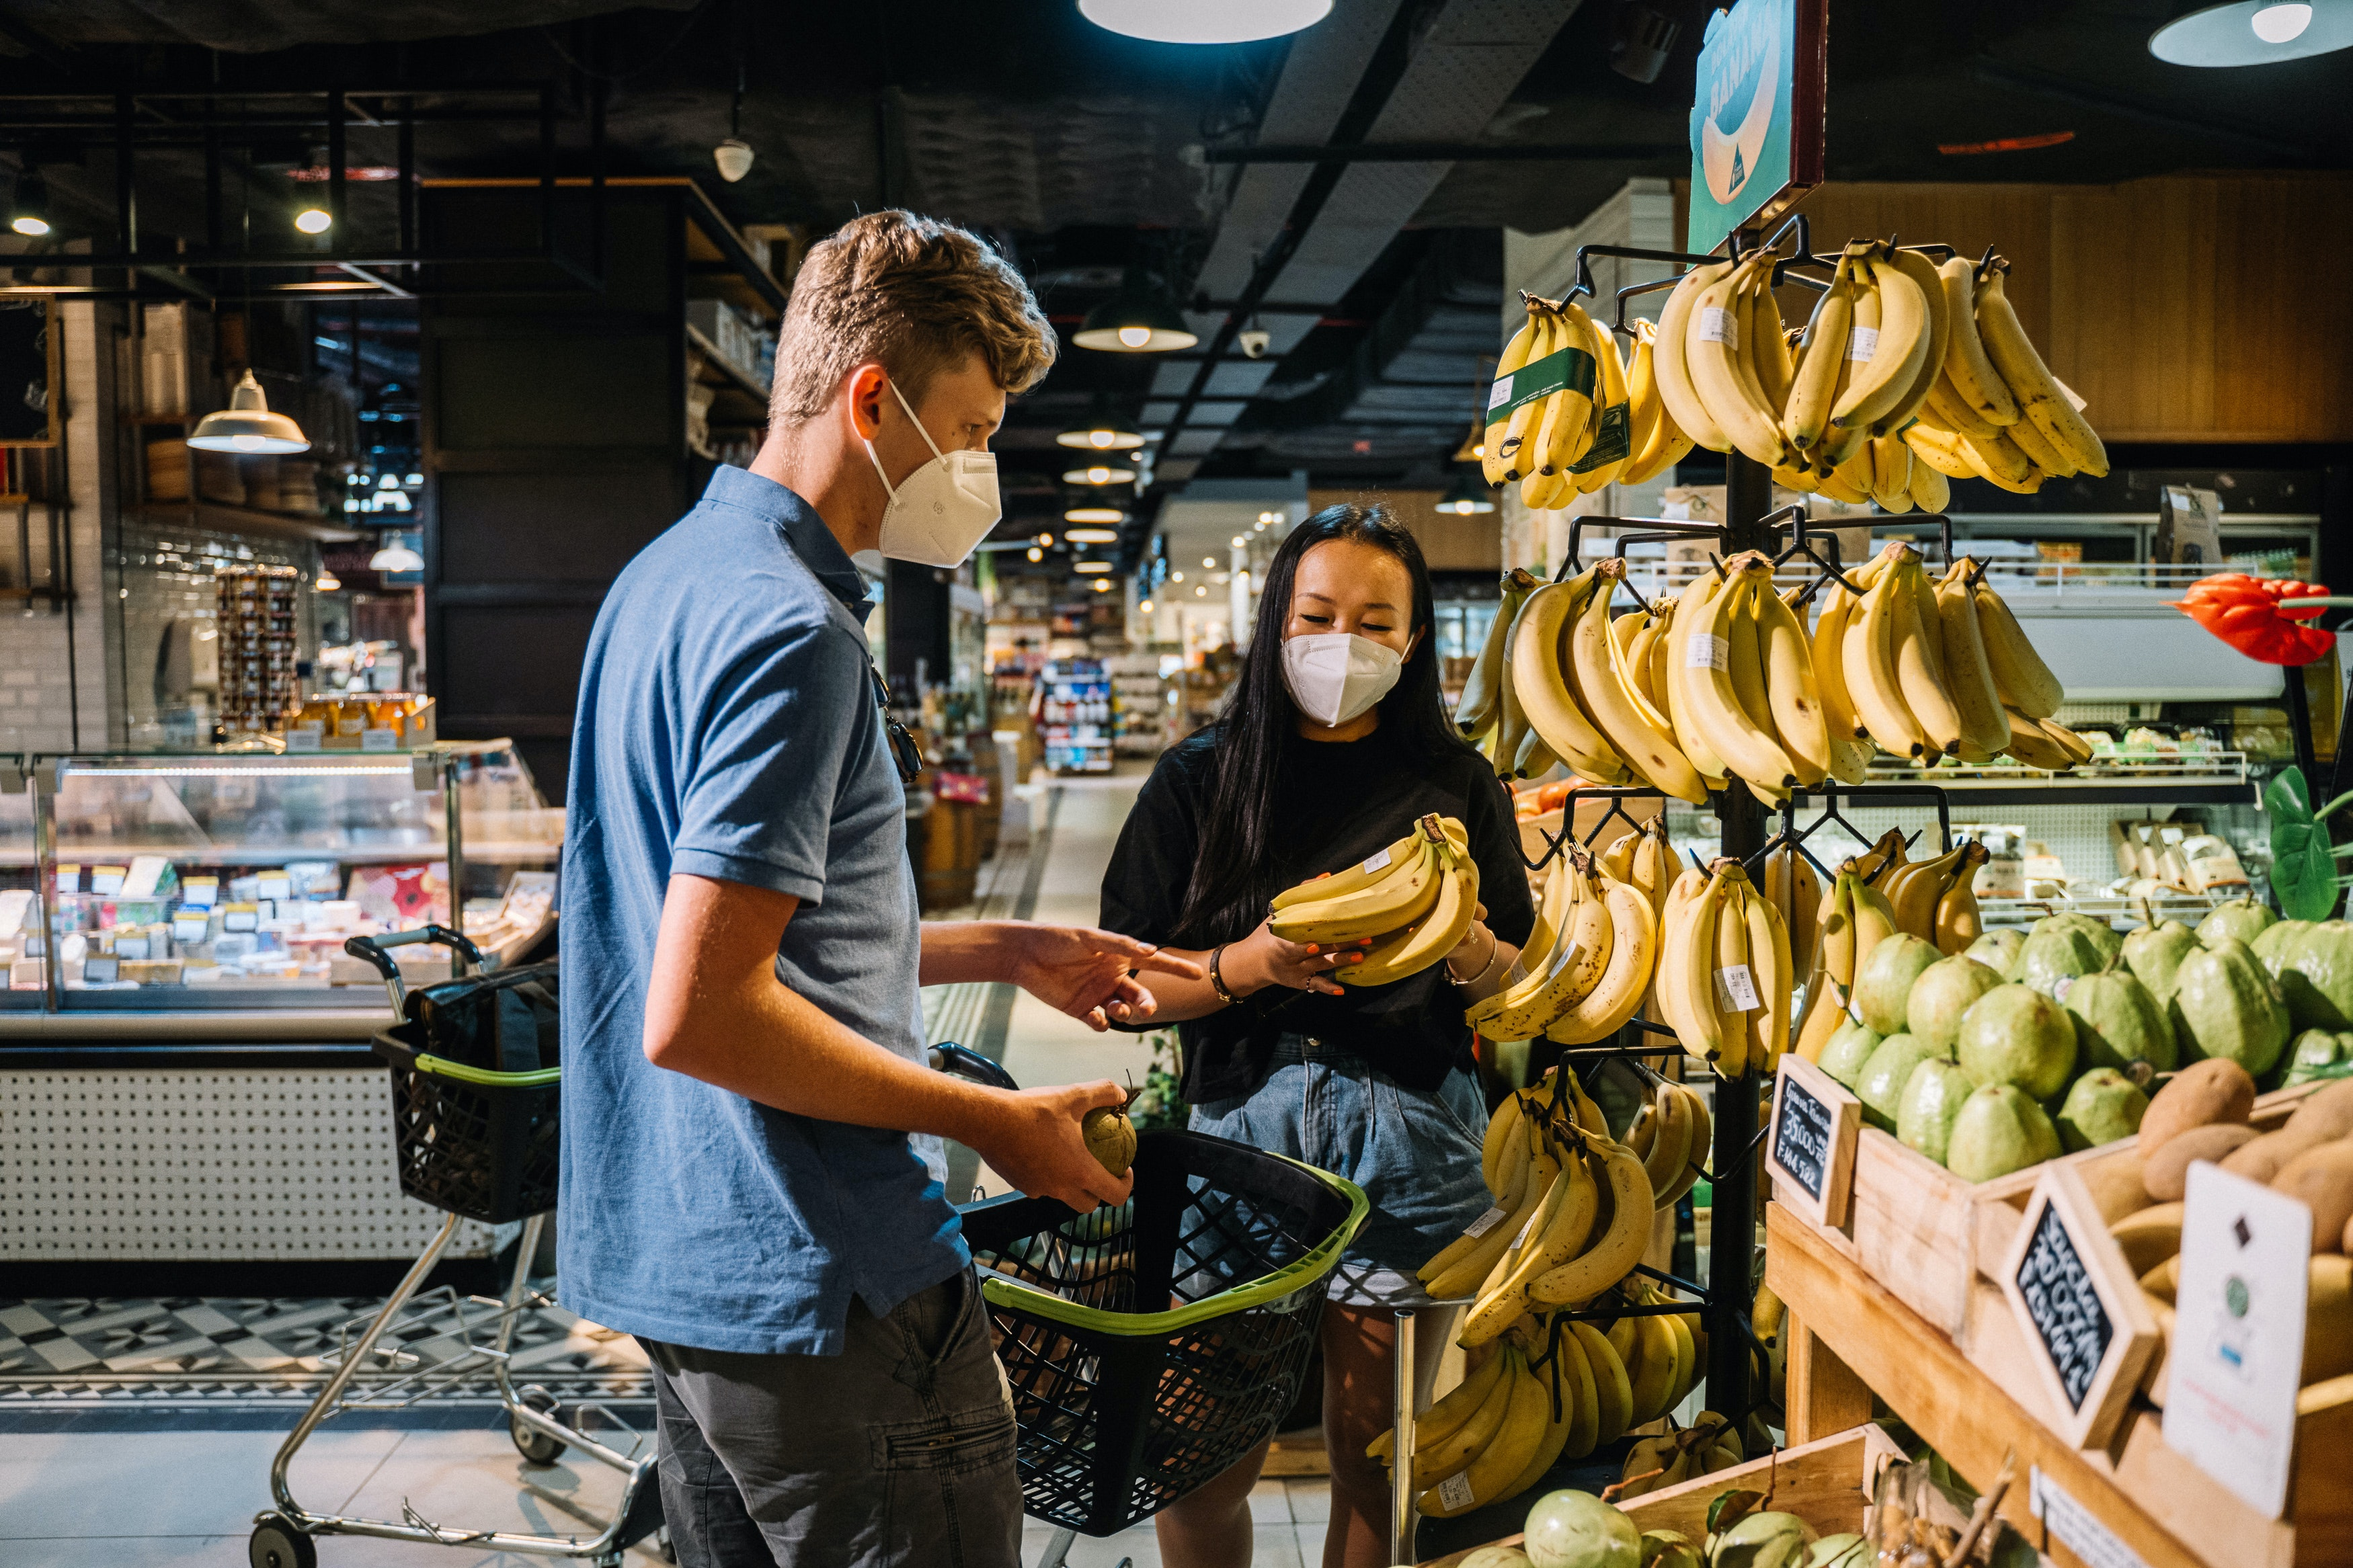 A man and woman wearing masks in the grocery store